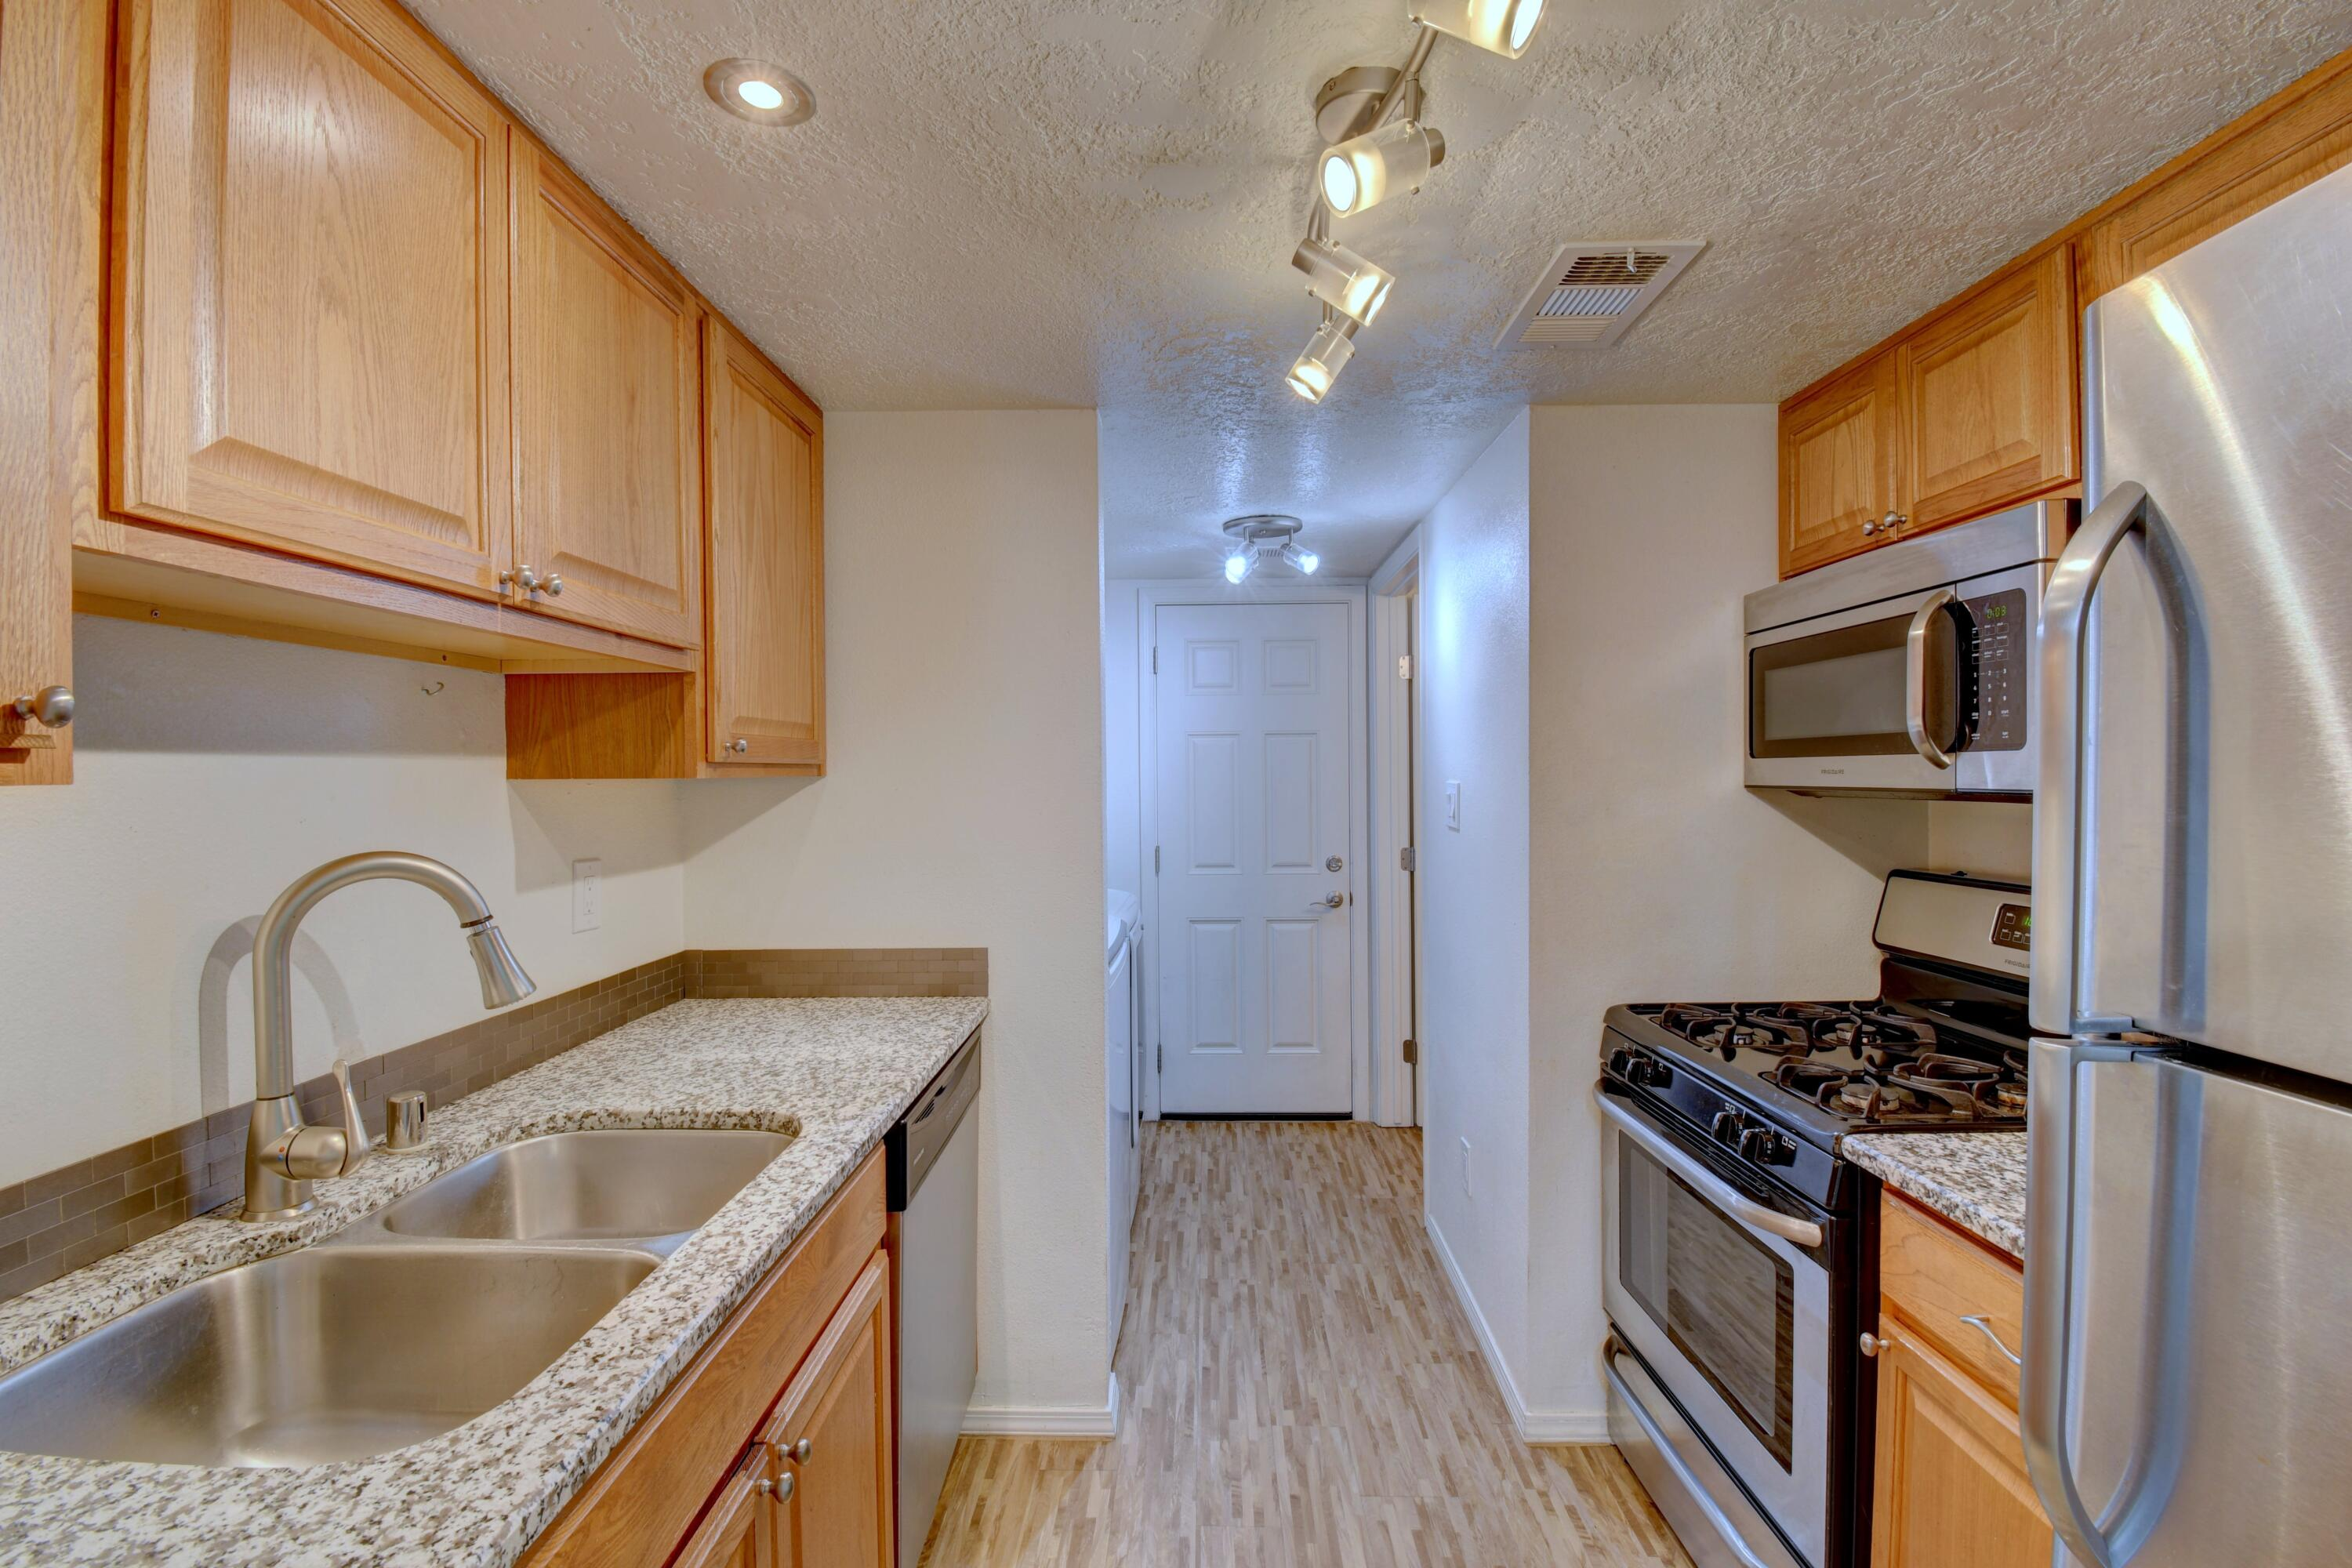 Super cute condo ready for its new owners.  Don't miss out!  Refrigerated air, updated kitchen and bathrooms, one car garage - ATTACHED!  All appliances are included. Water heater replaced in 2016.  HOA covers roof, stucco, grounds, water and trash.  HOA dues ($445) will go down in 4 1/2 years after 5 year renovation complete.  The renovation includes updating of the roofs, facades and fences.